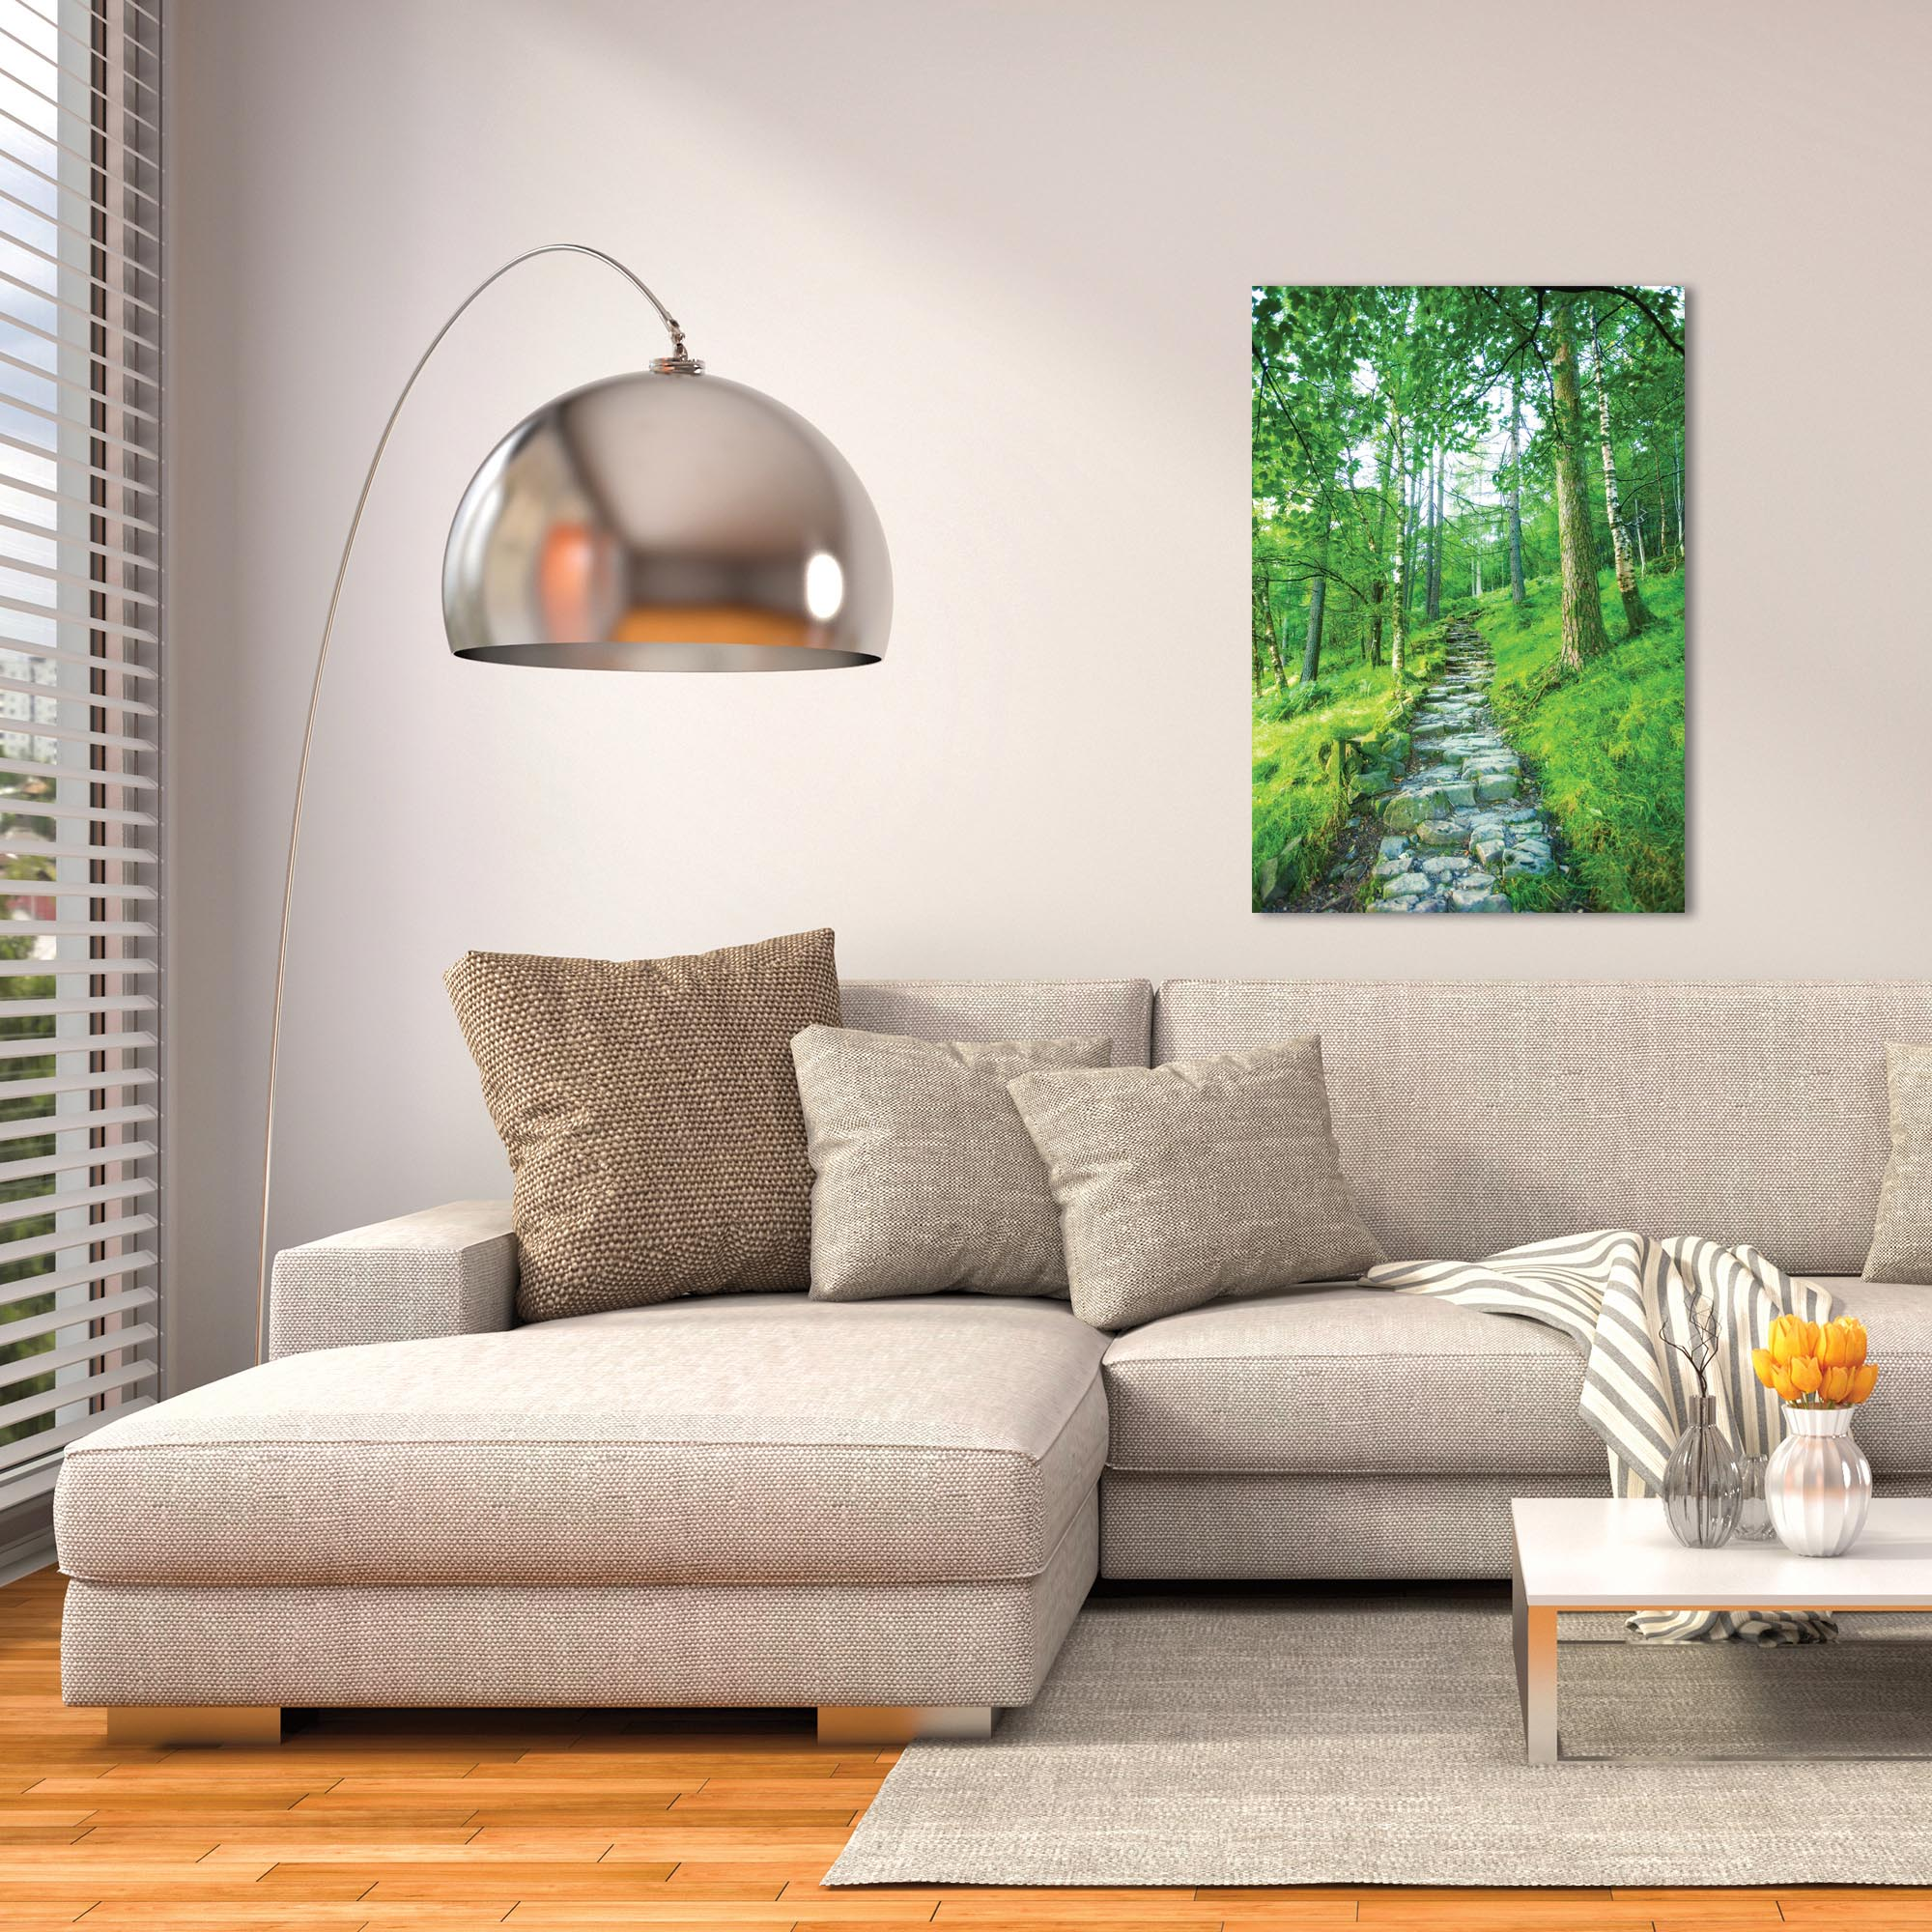 Landscape Photography 'Cobblestone Path' - Green Trees Art on Metal or Plexiglass - Lifestyle View